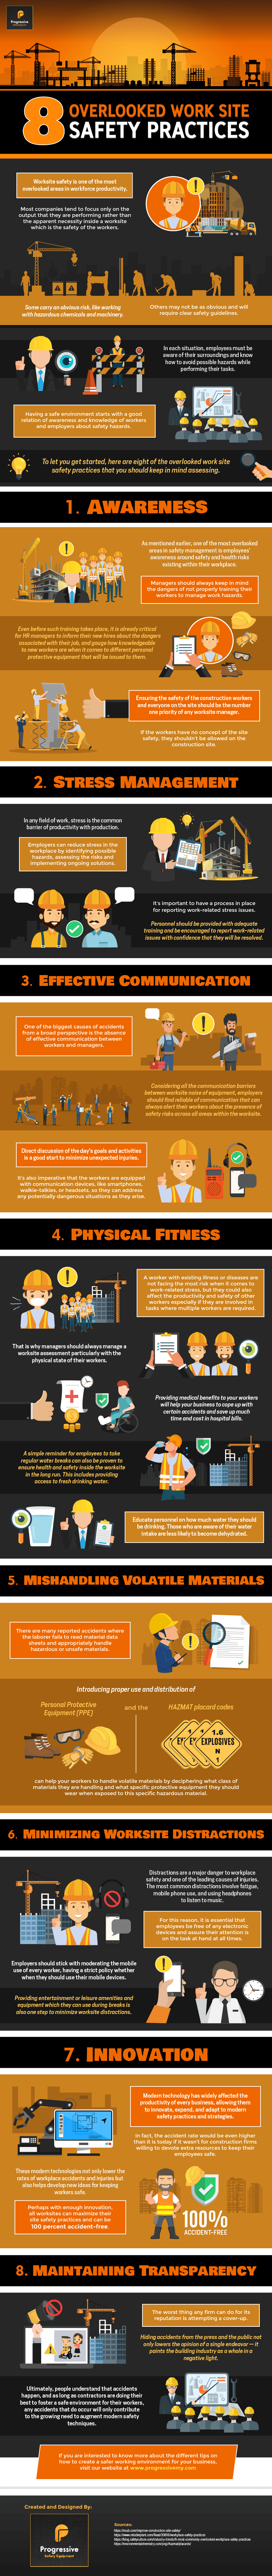 8 Overlooked Work Site Safety Practices (Infographic)